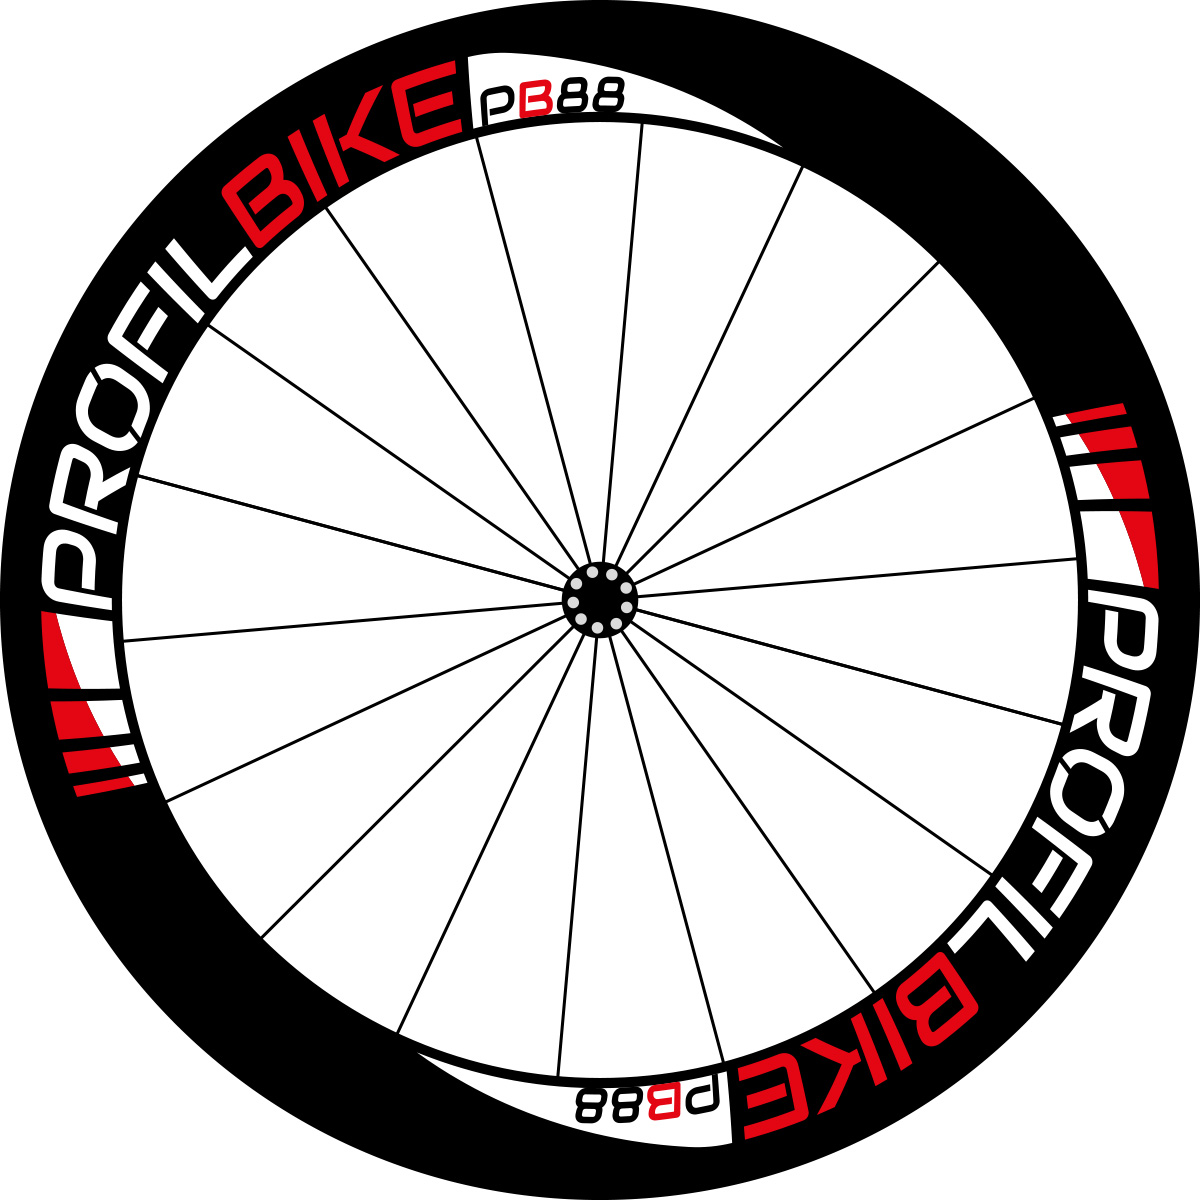 Profilbike PB88 CARBON DISC design rouge